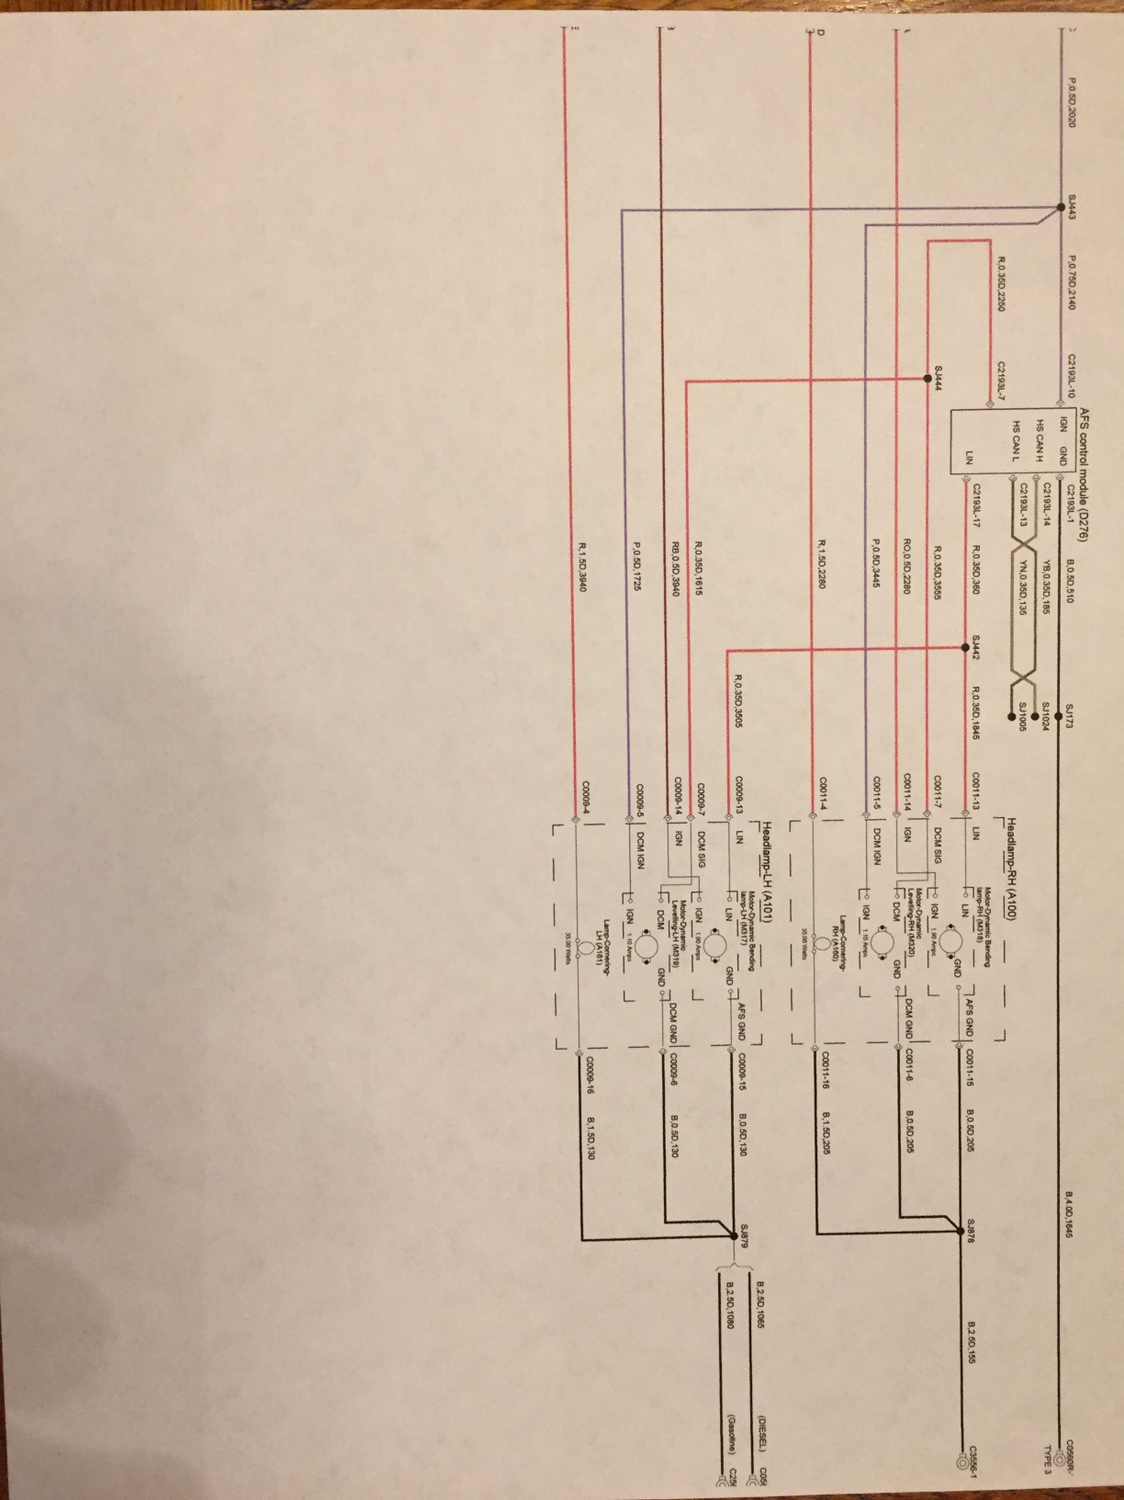 Wiring Diagram Req For Headlight Switch 2006 Rrs And 2012